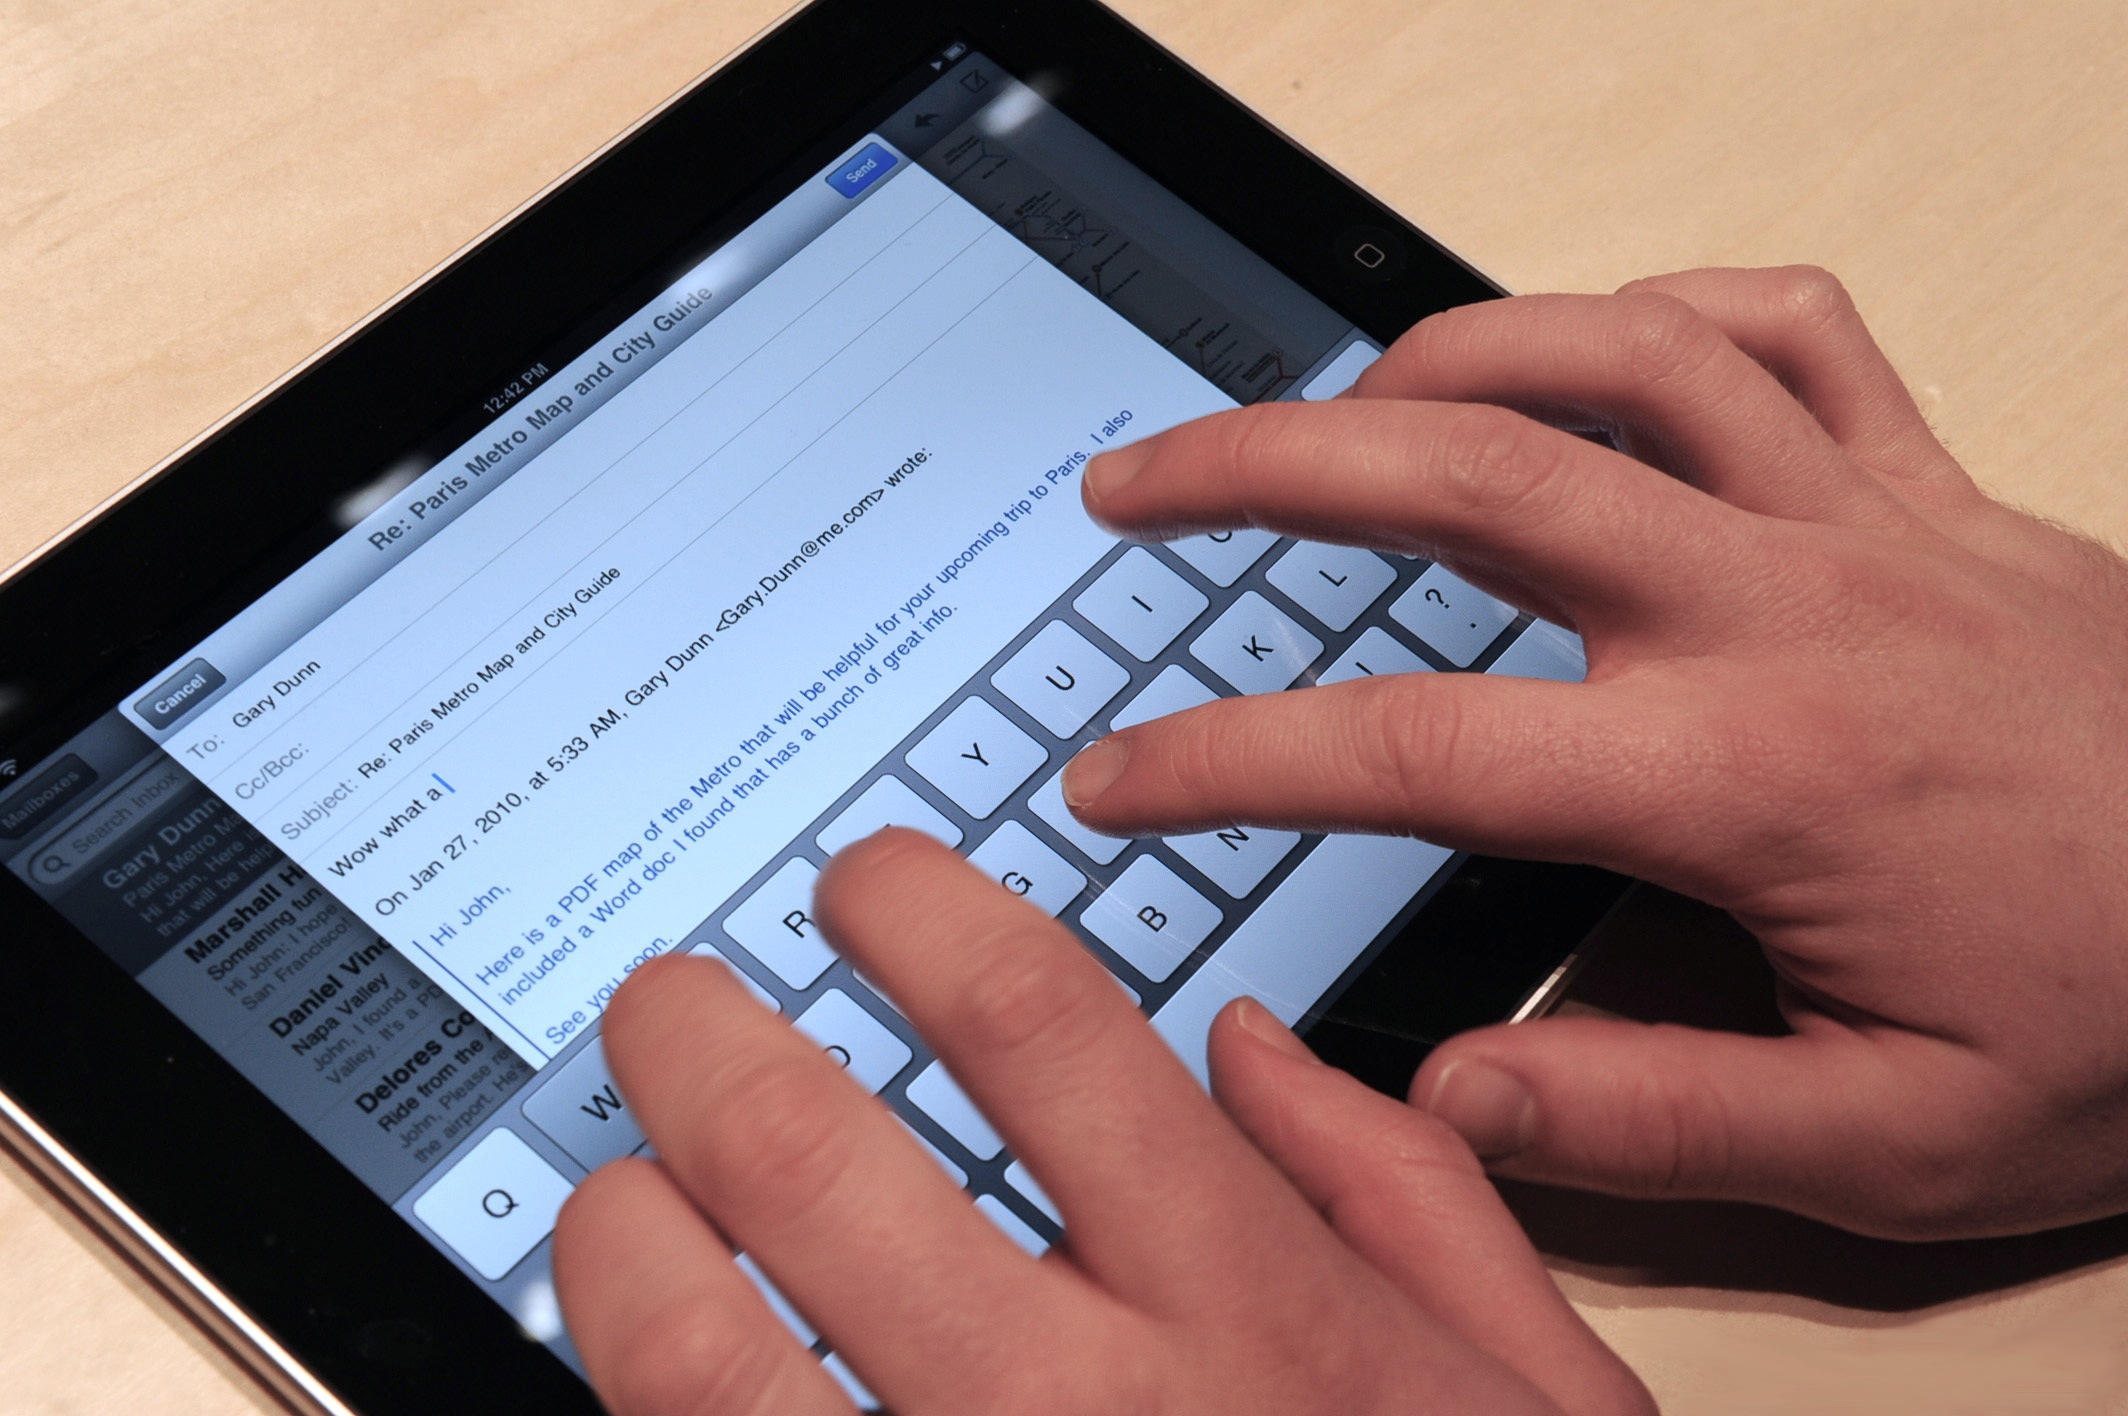 Ask Deemable Tech: Why Don't Touchscreens Respond To My Touch